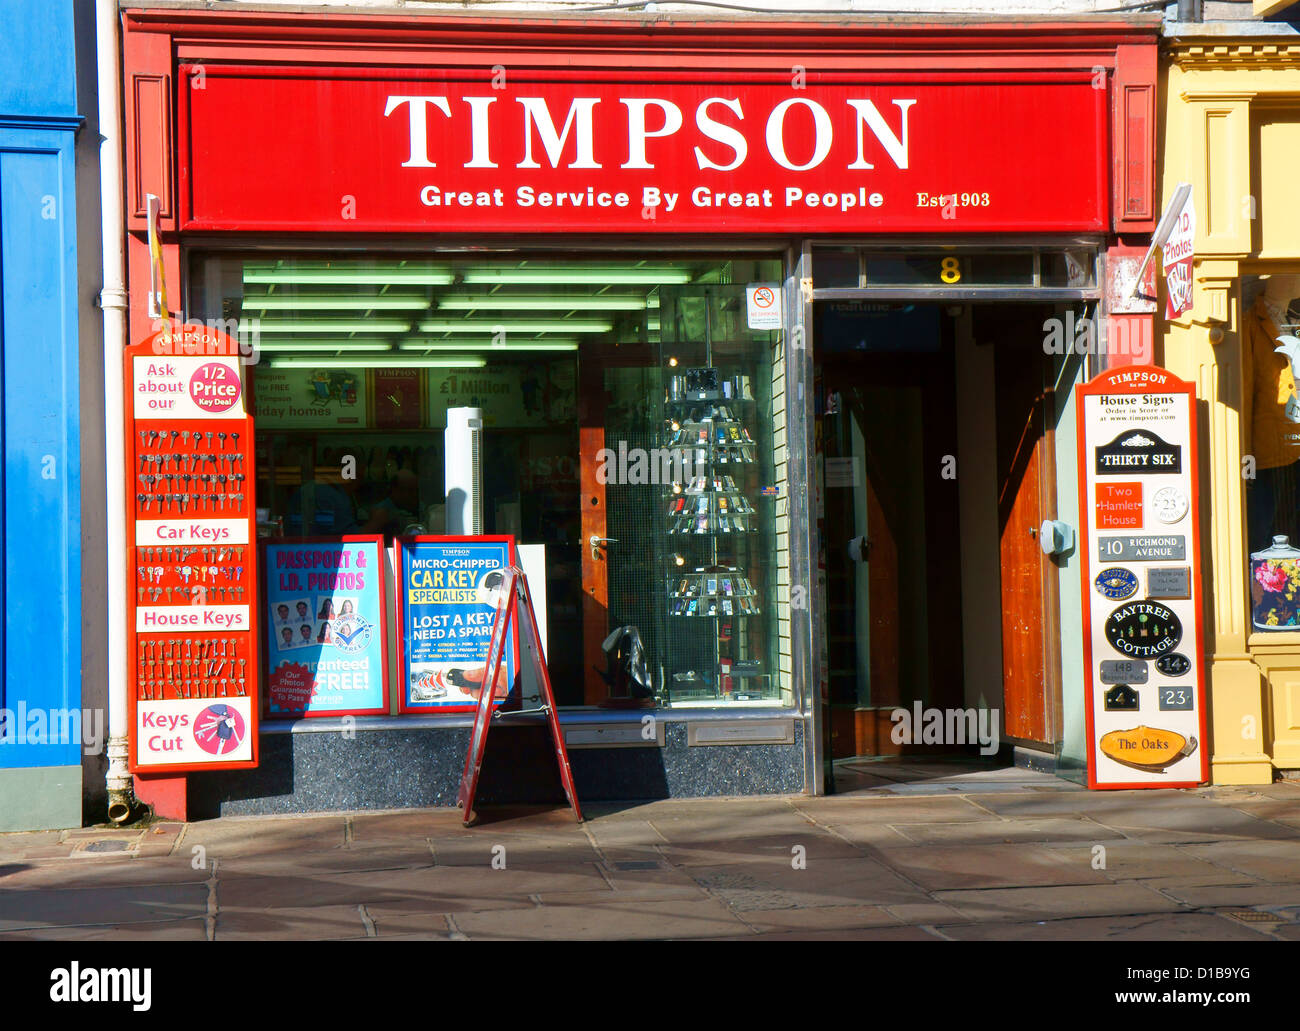 Timpsons Stock Photos Amp Timpsons Stock Images Alamy